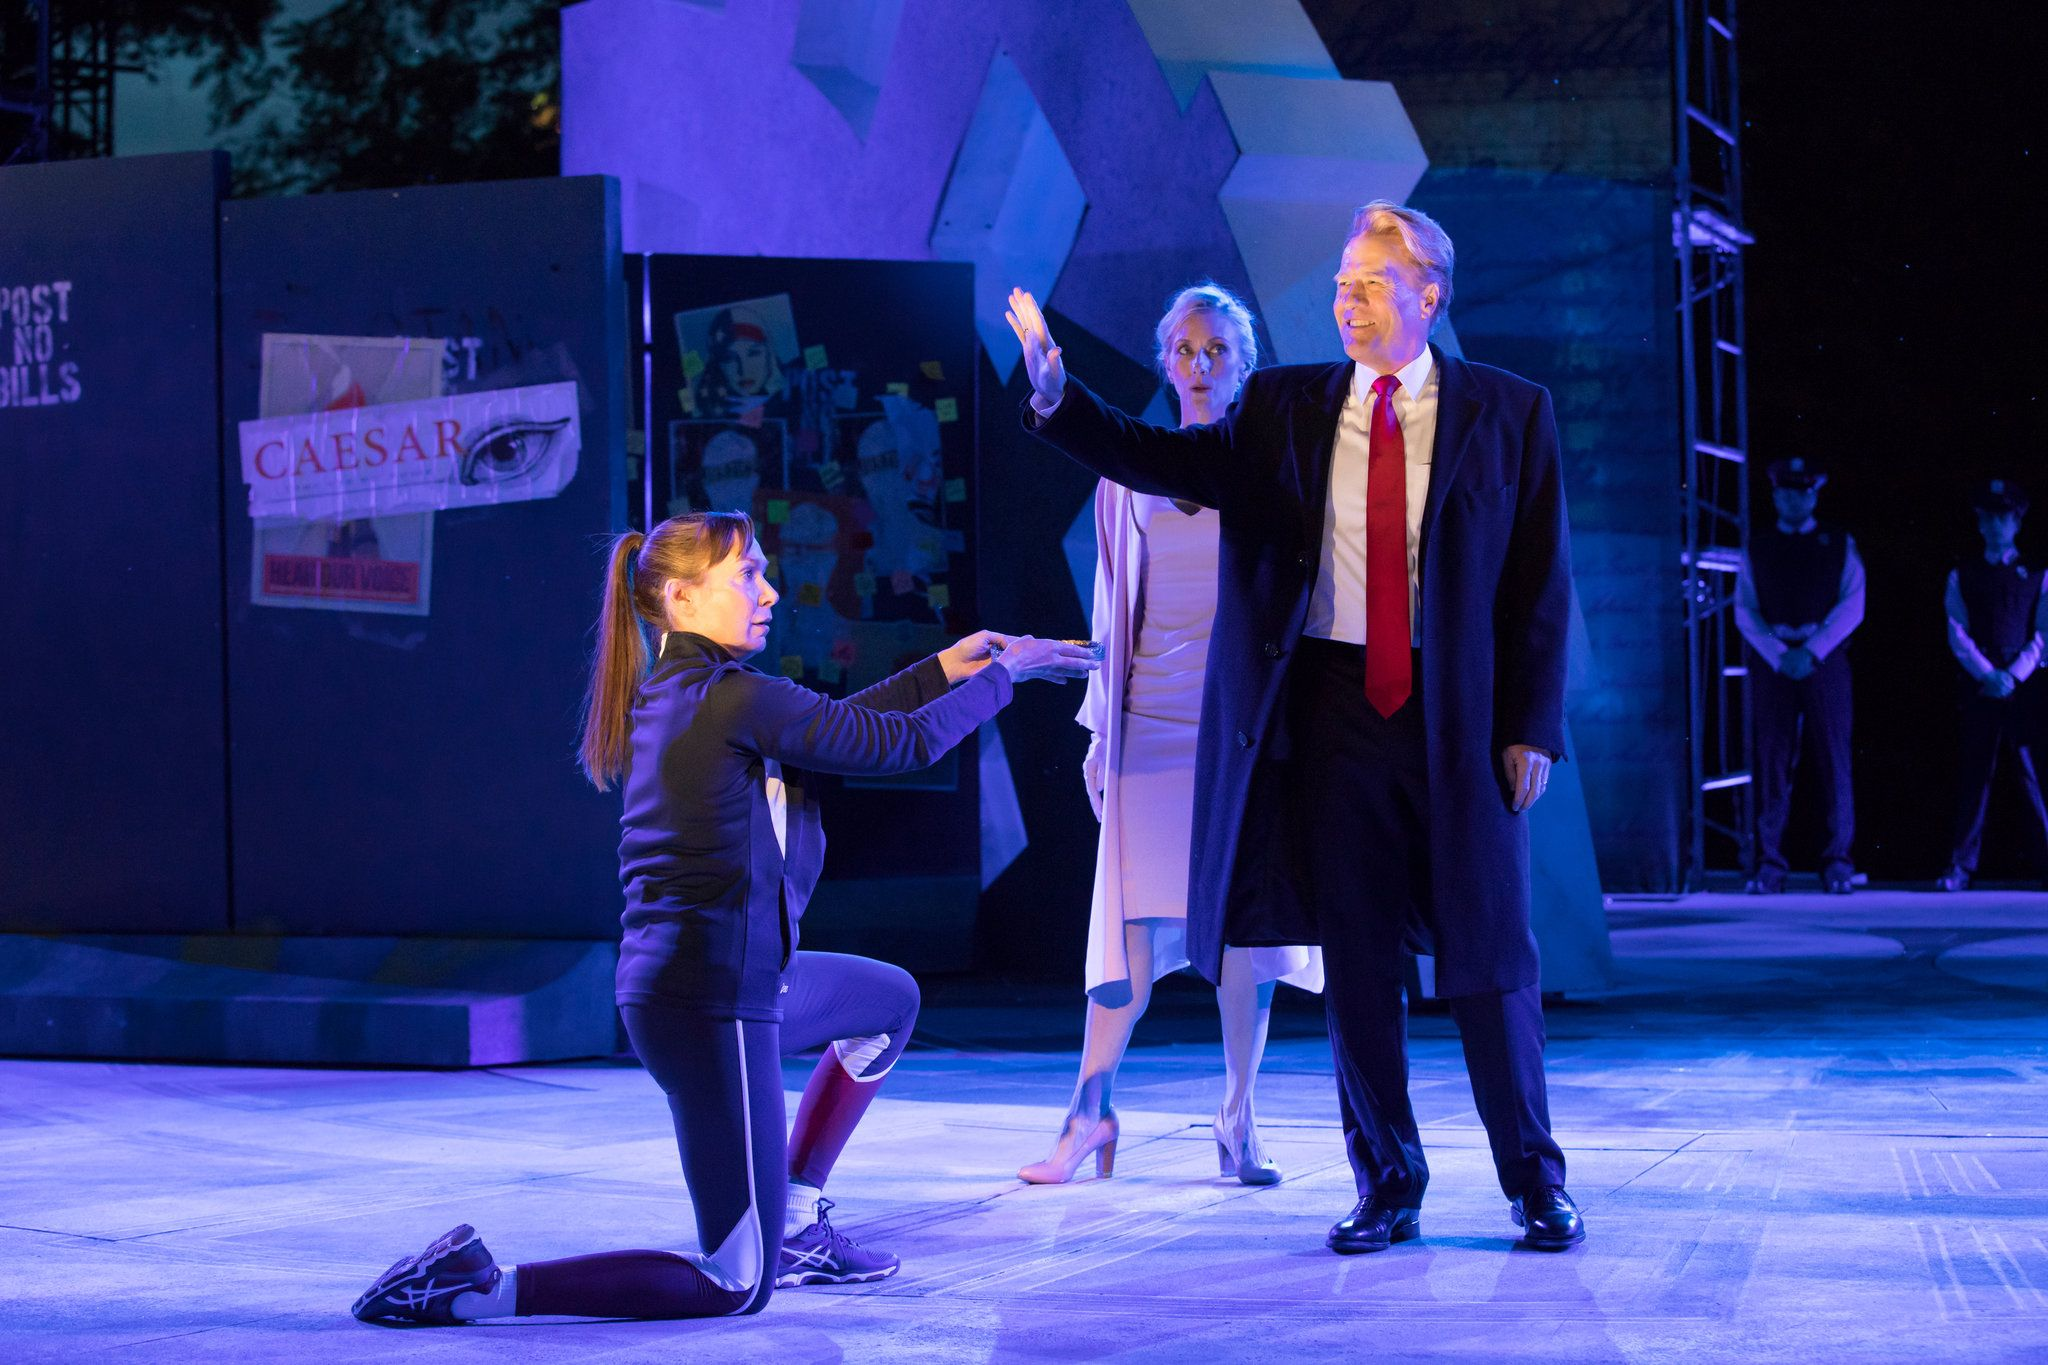 "The ""graphic"" depiction of the emperor's assassination in the Public Theater's production of the play in Central Park led Delta and Bank of America to withdraw support."